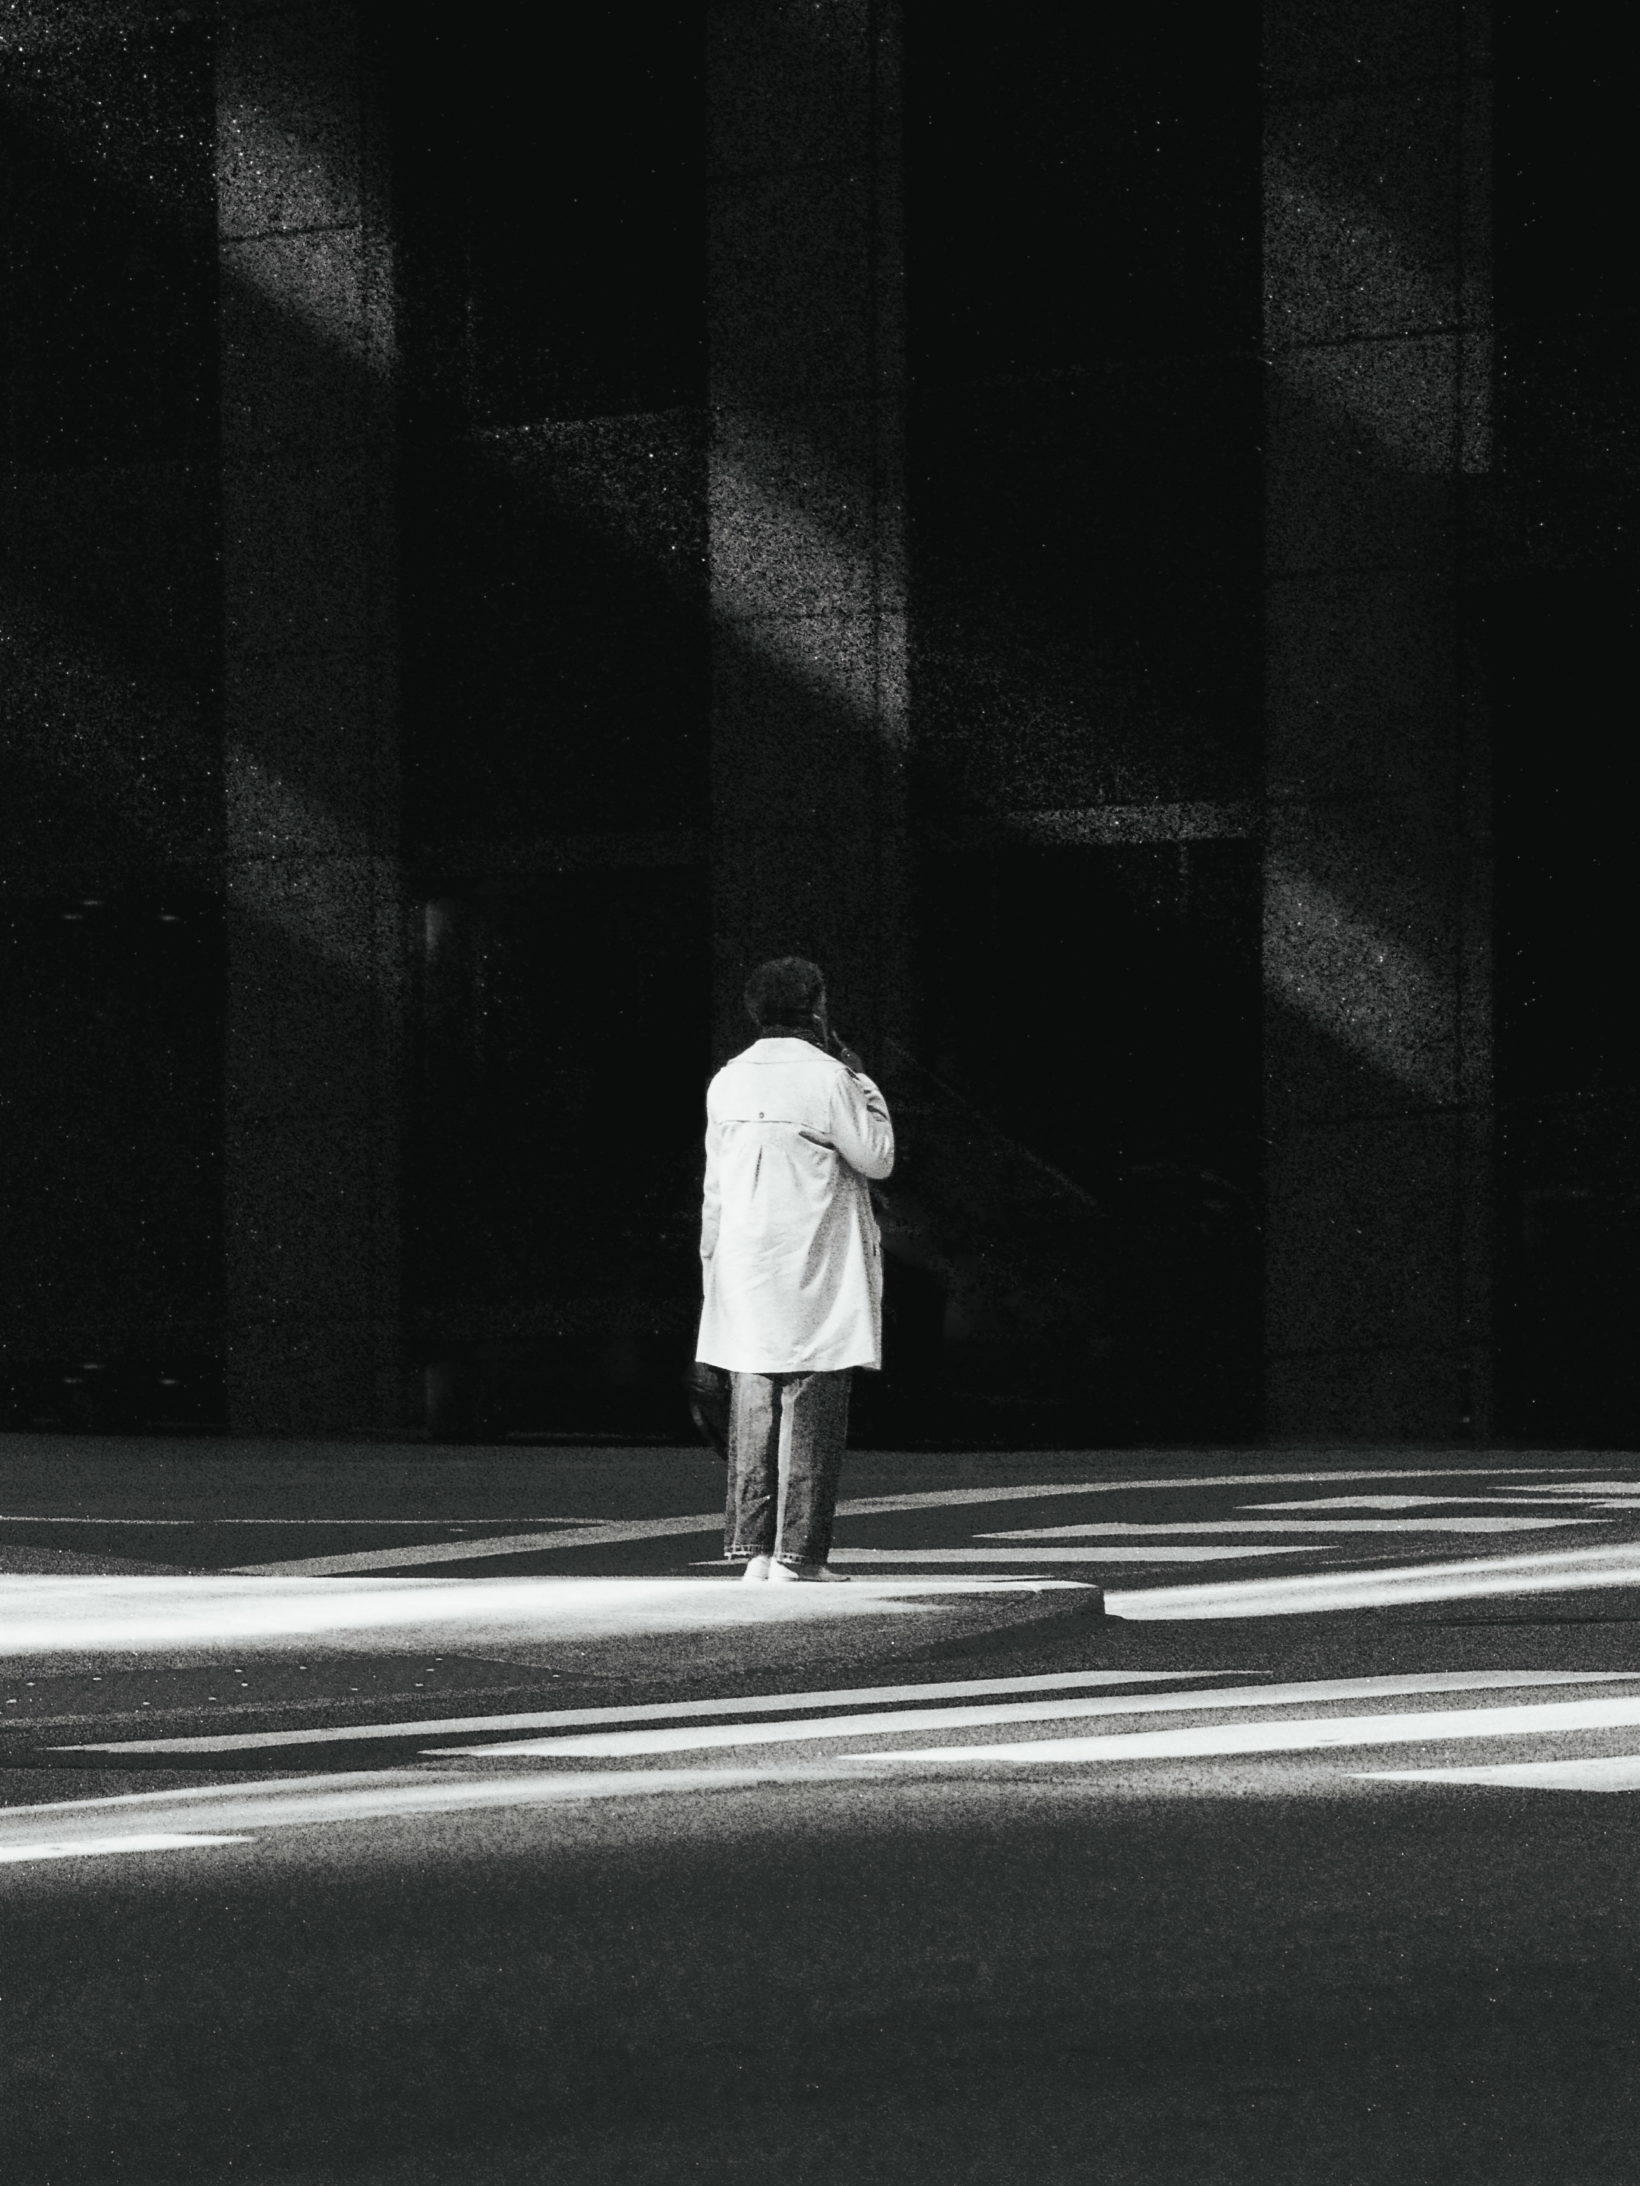 How To See Light : A Guide To Black & White Photography - Moment